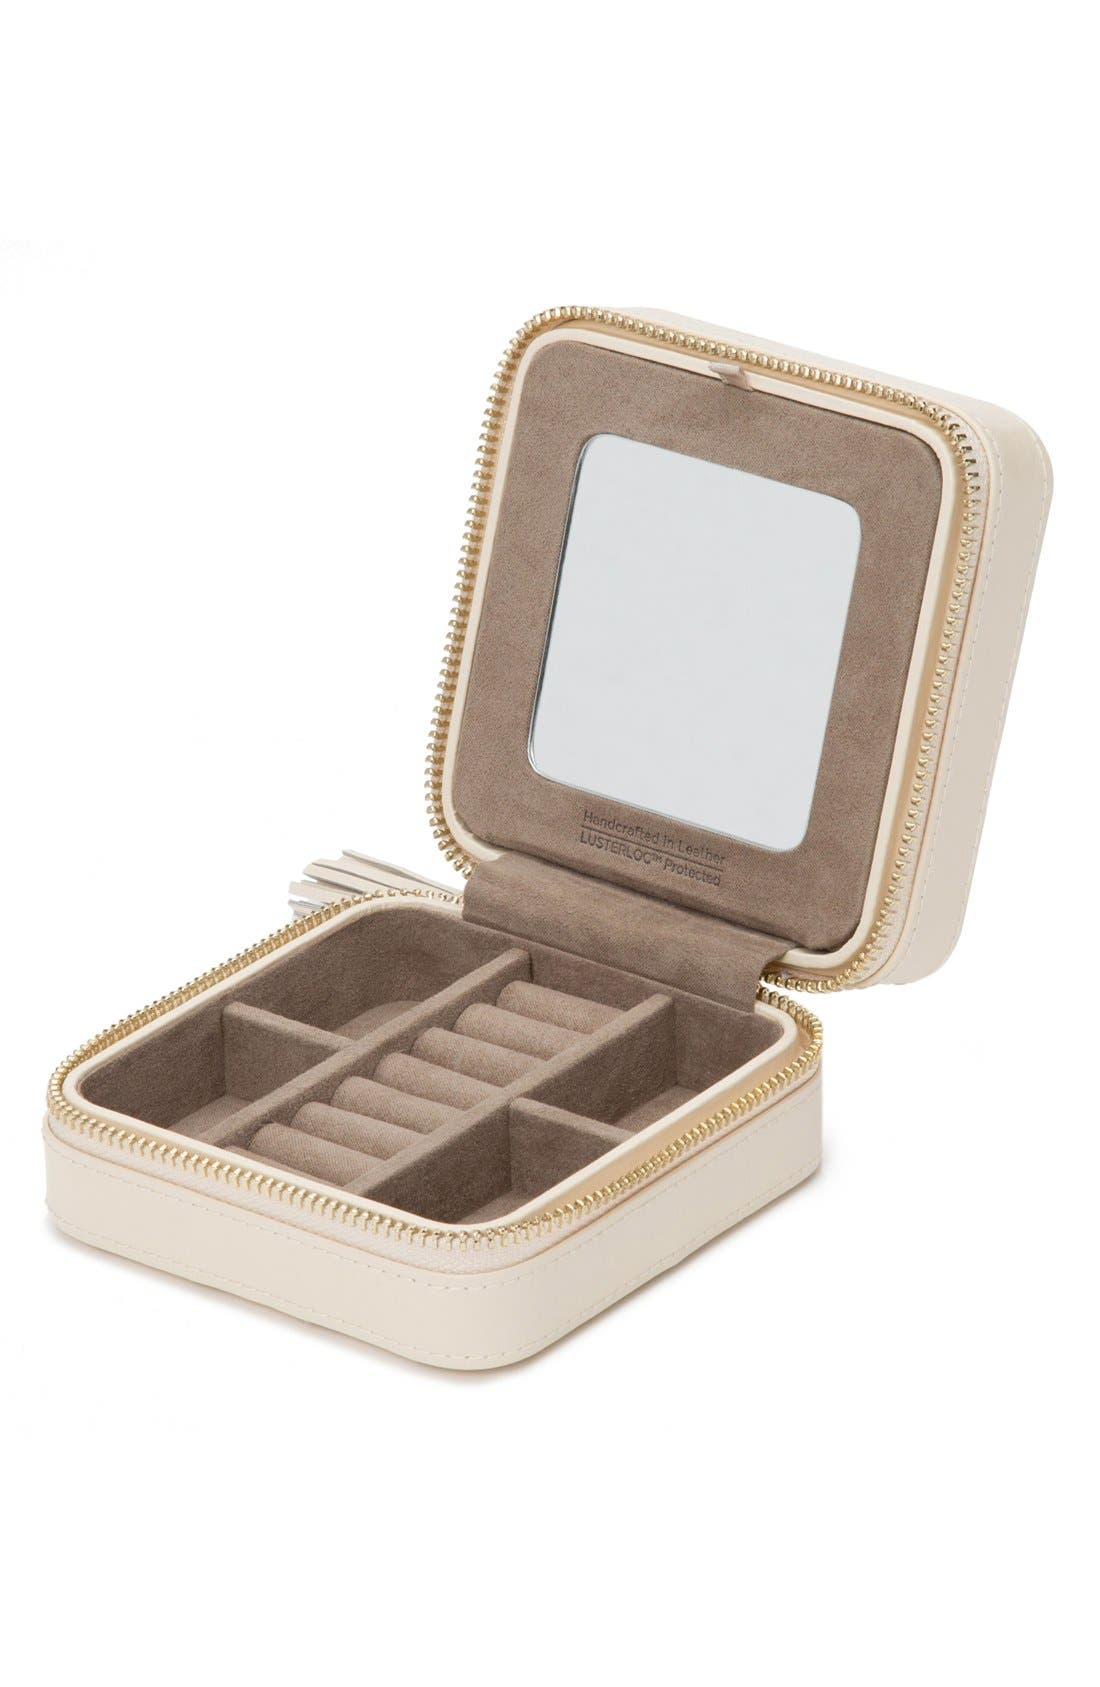 'Caroline' Travel Jewelry Case,                             Alternate thumbnail 2, color,                             Ivory